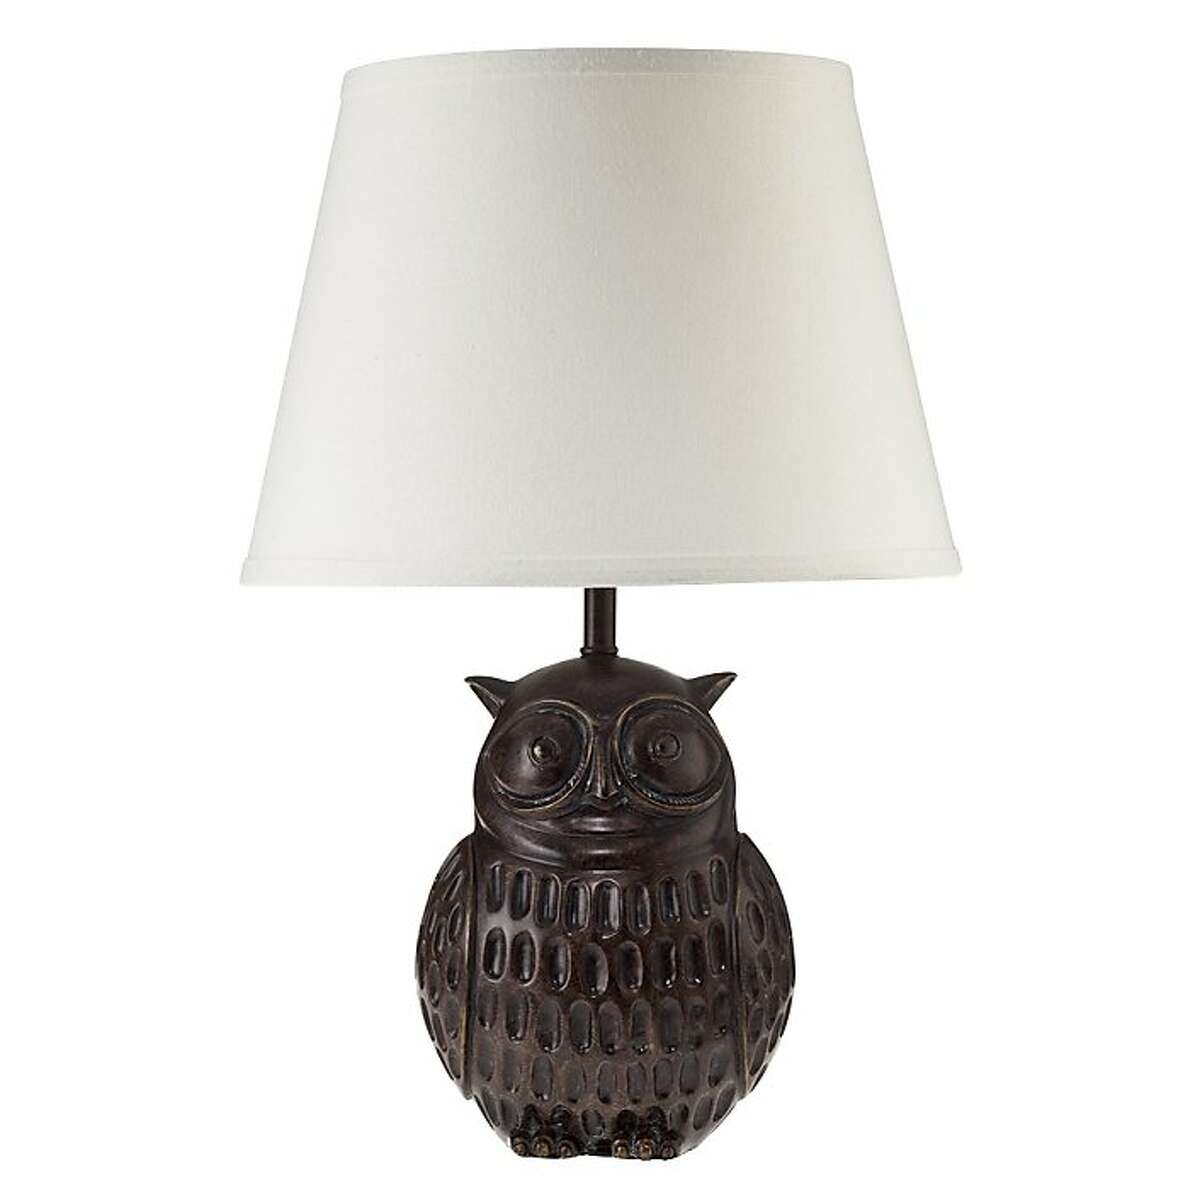 Less: $39 Linen and Resin Owl Lamp from Target (target.com)